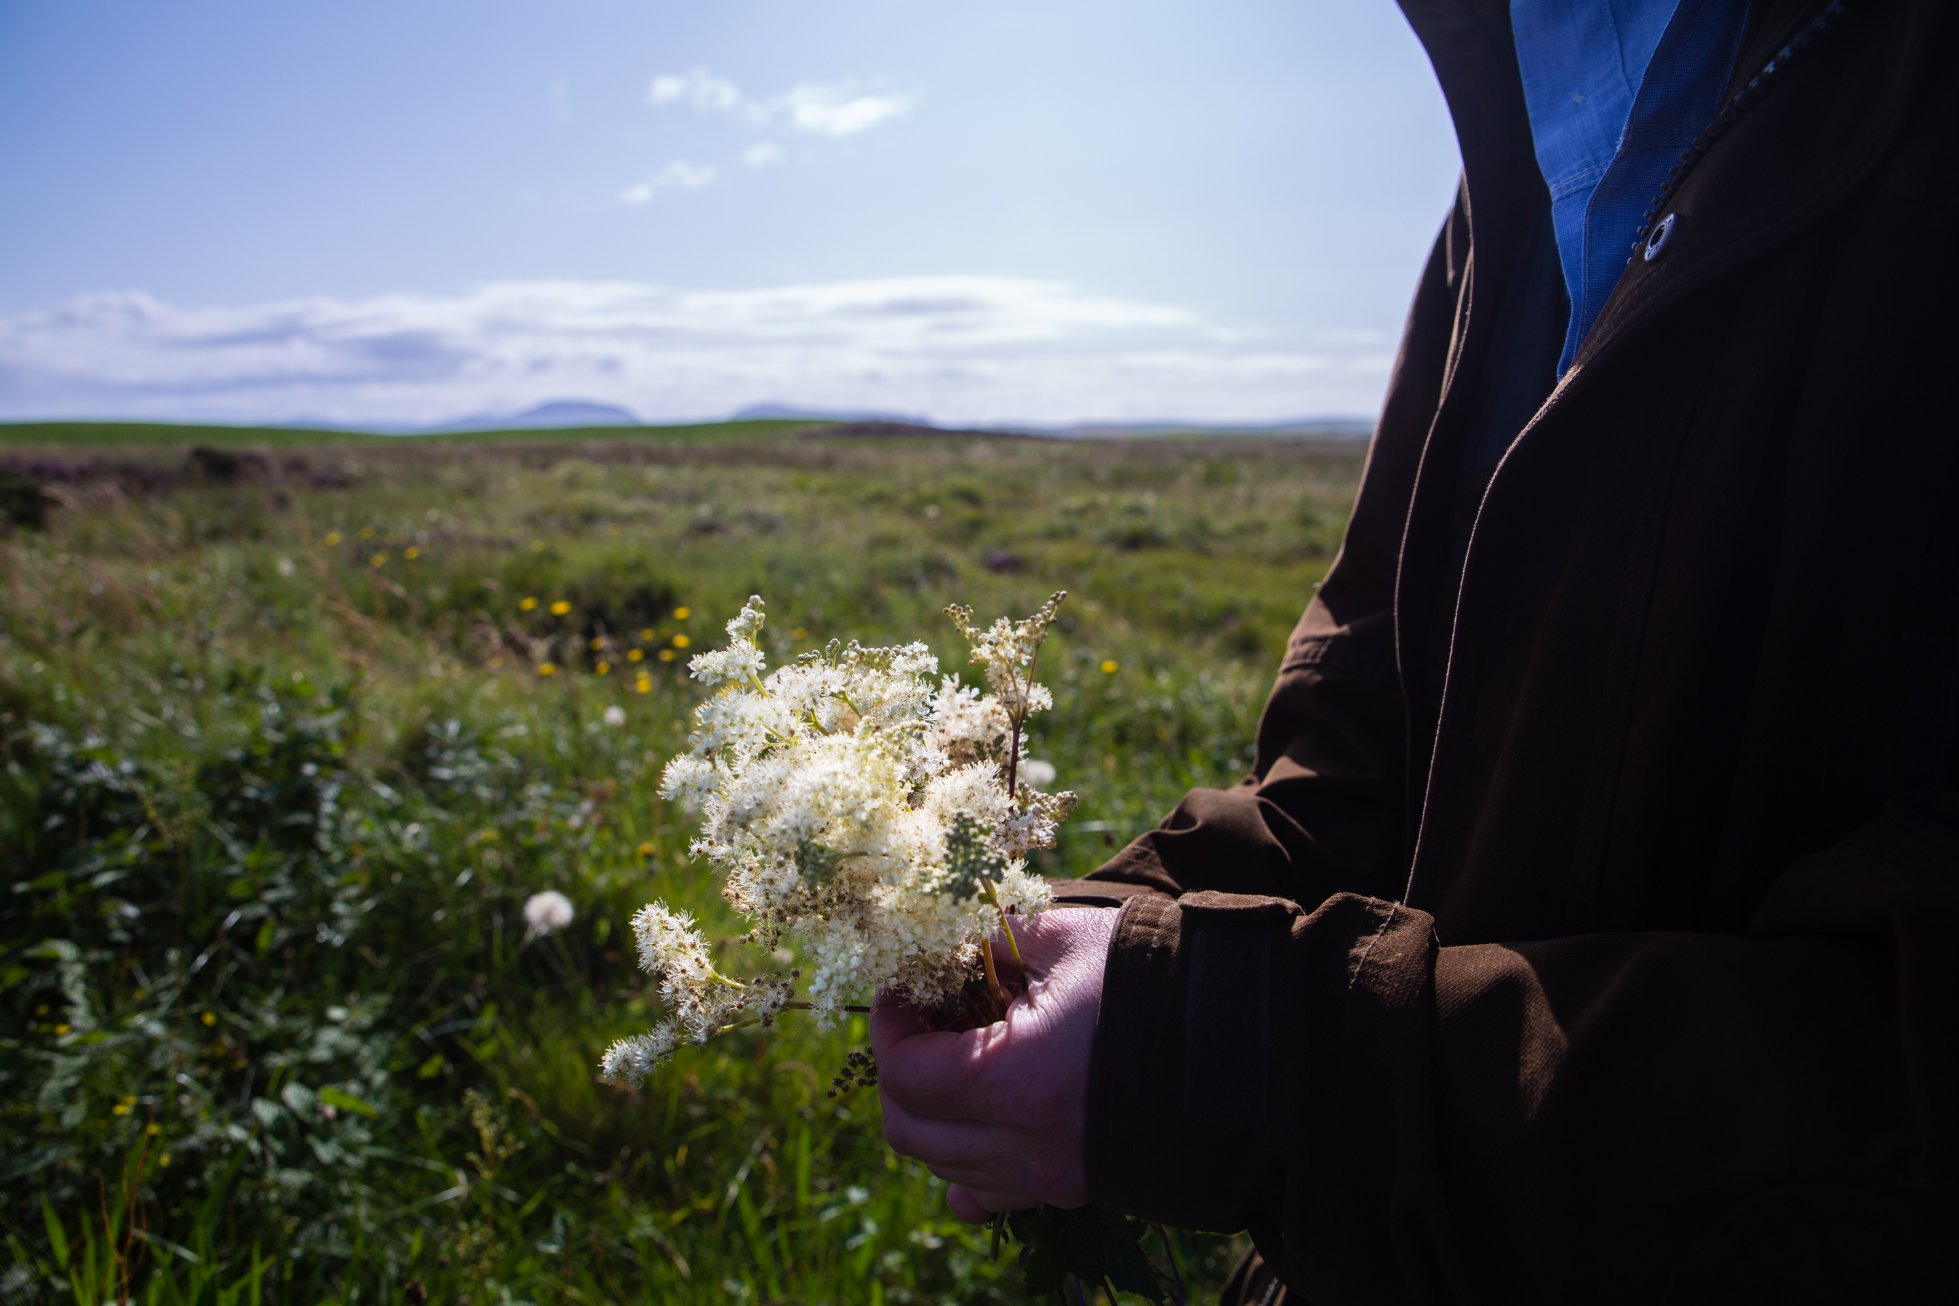 Foraging for meadowsweet in the Orkney countryside